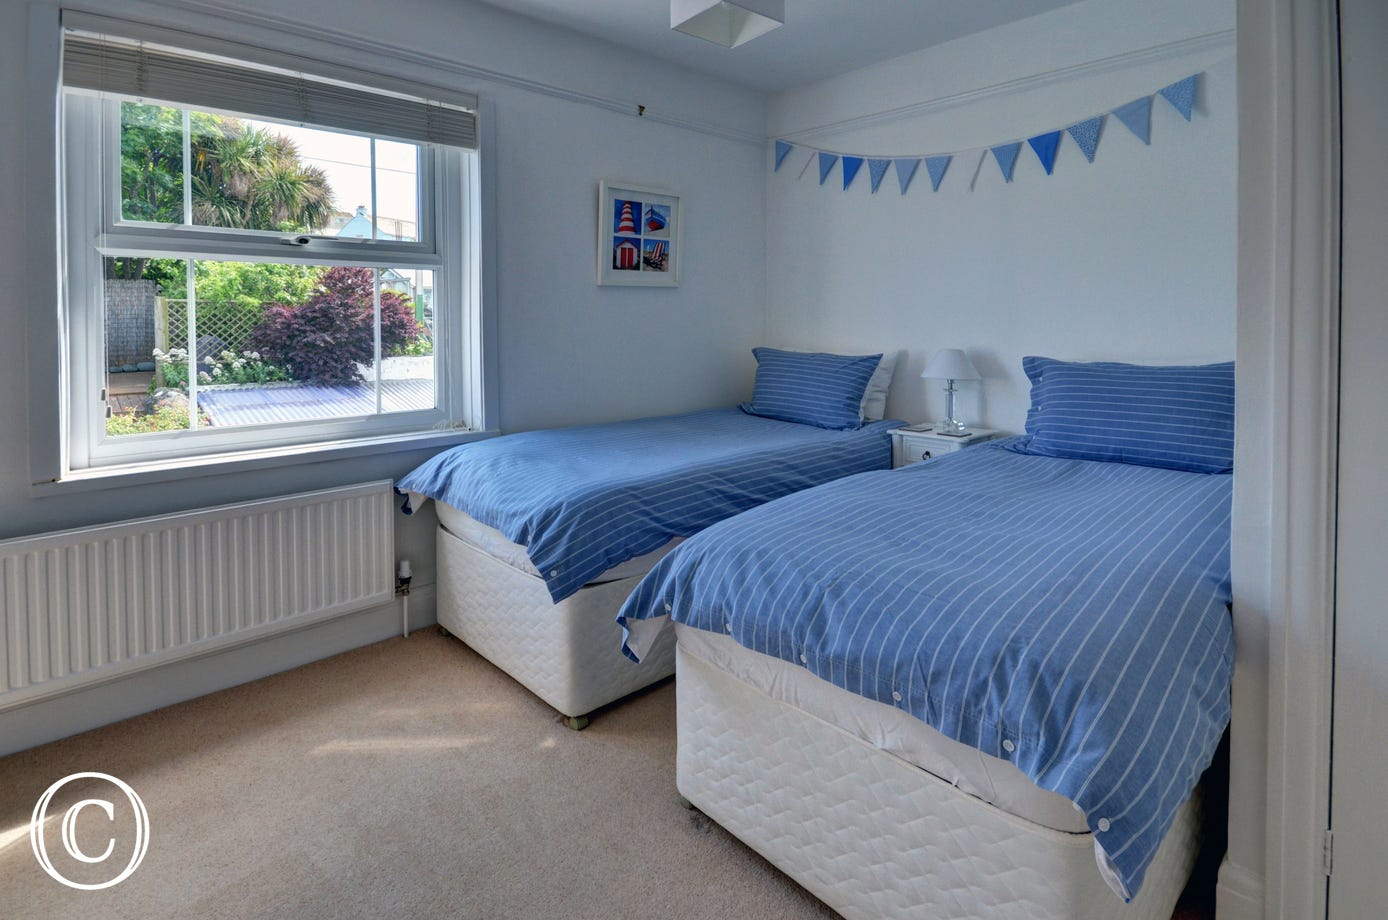 Attractive twin bedroom with views of the garden